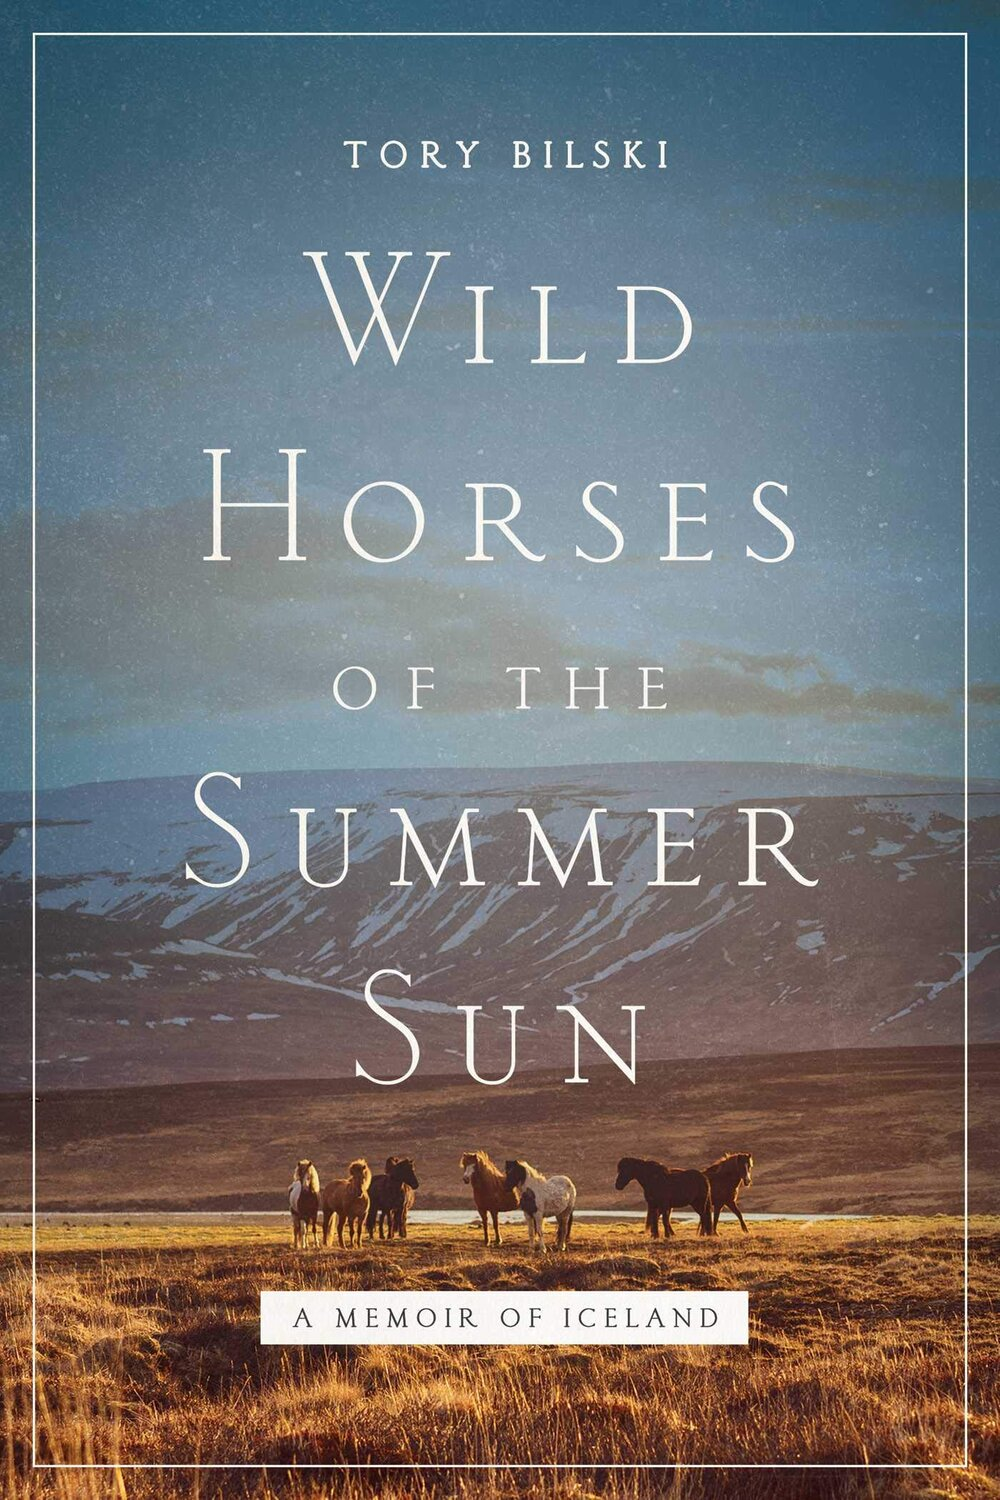 Wild Horses of the Summer Sun Book Review by ReInventing50s